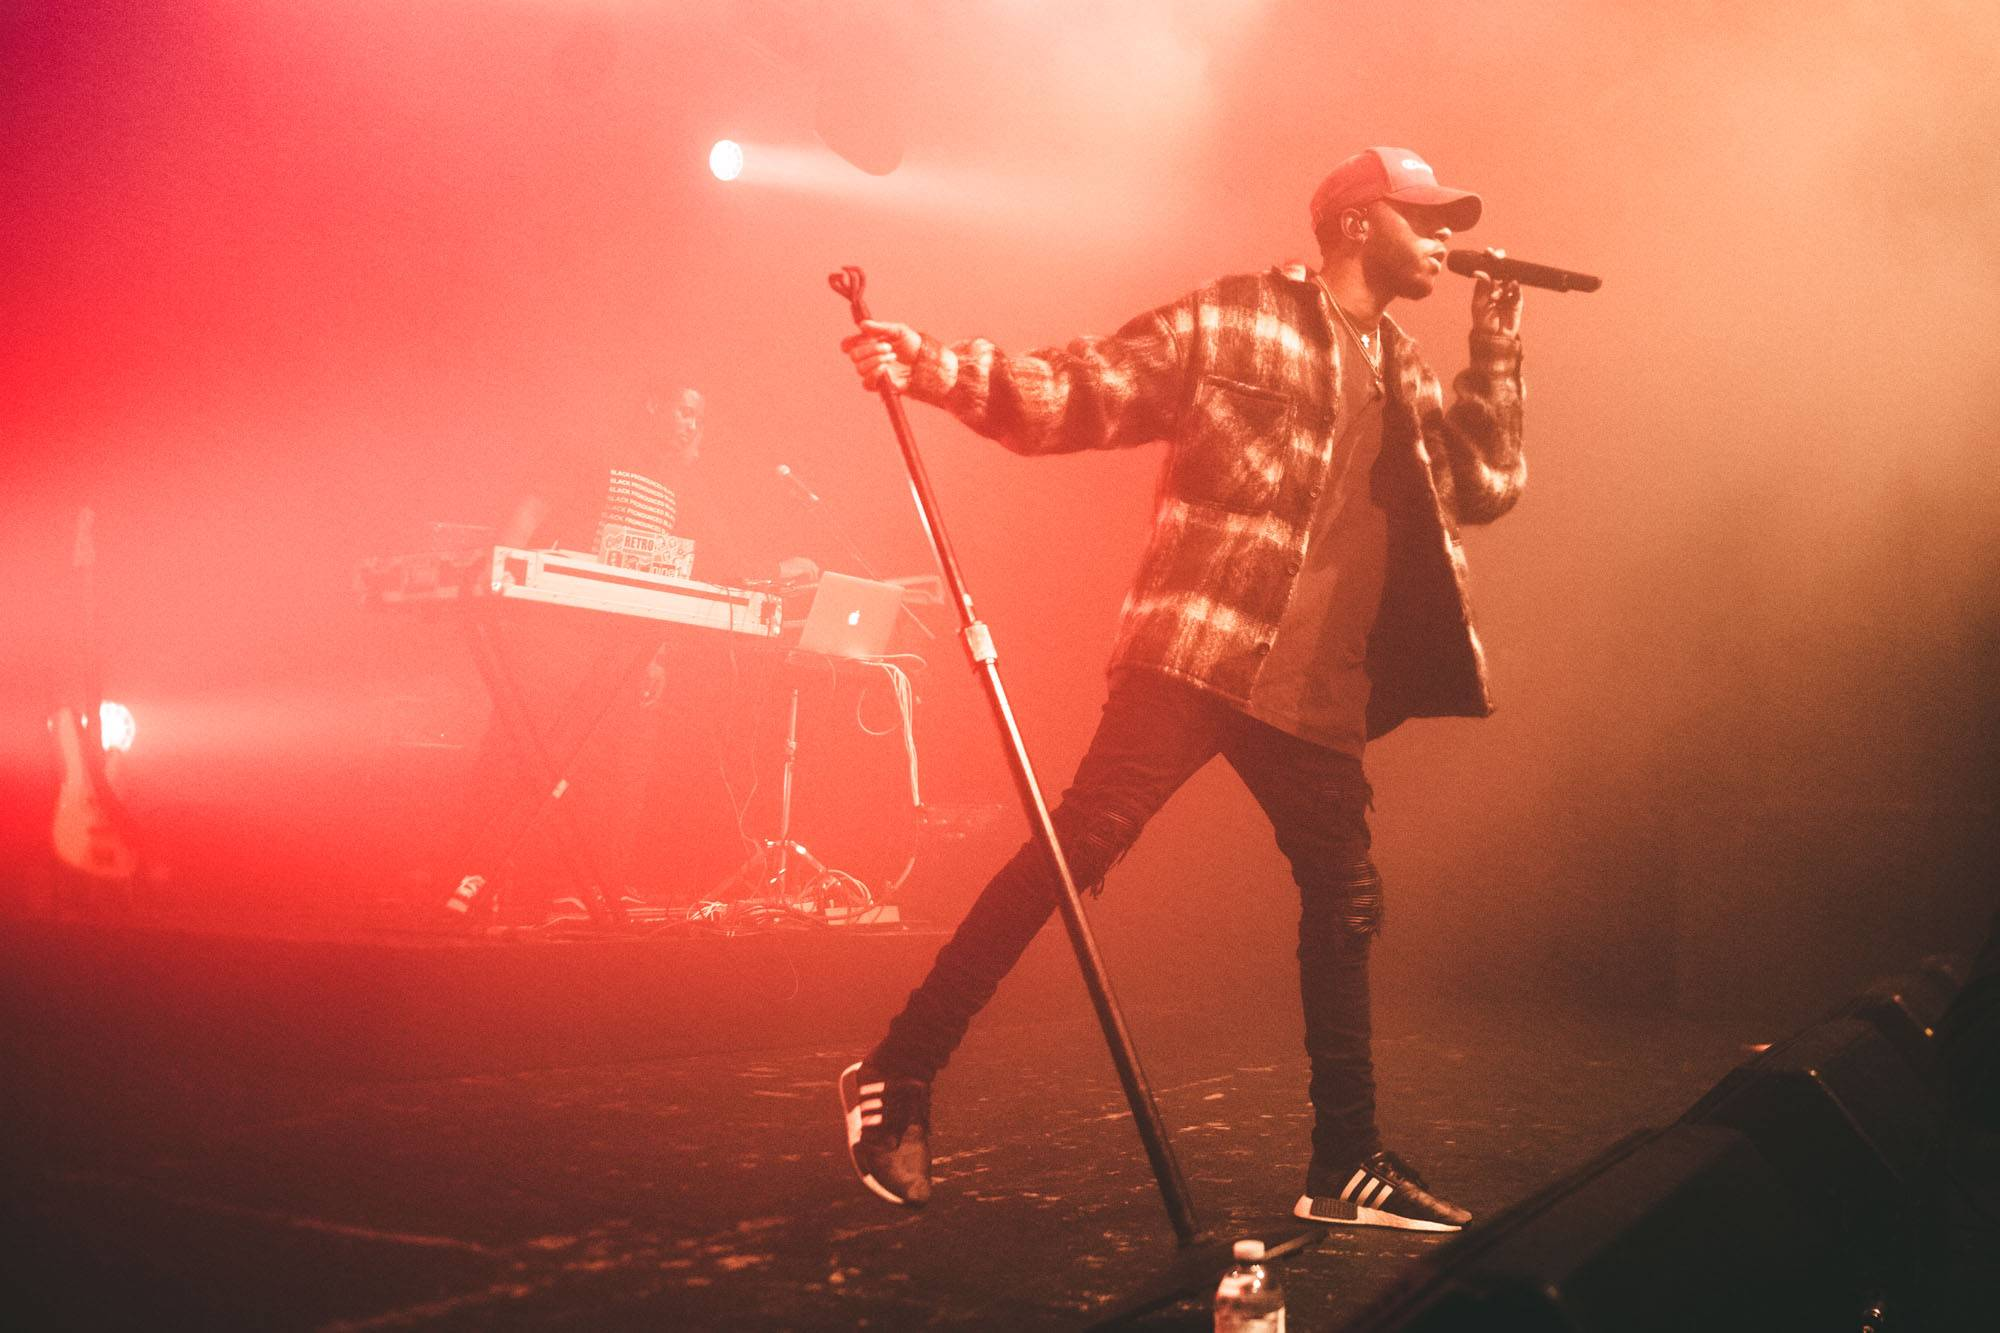 6lack at the Commodore Ballroom, Vancouver, Nov 3 2017. Kelli Anne photo.